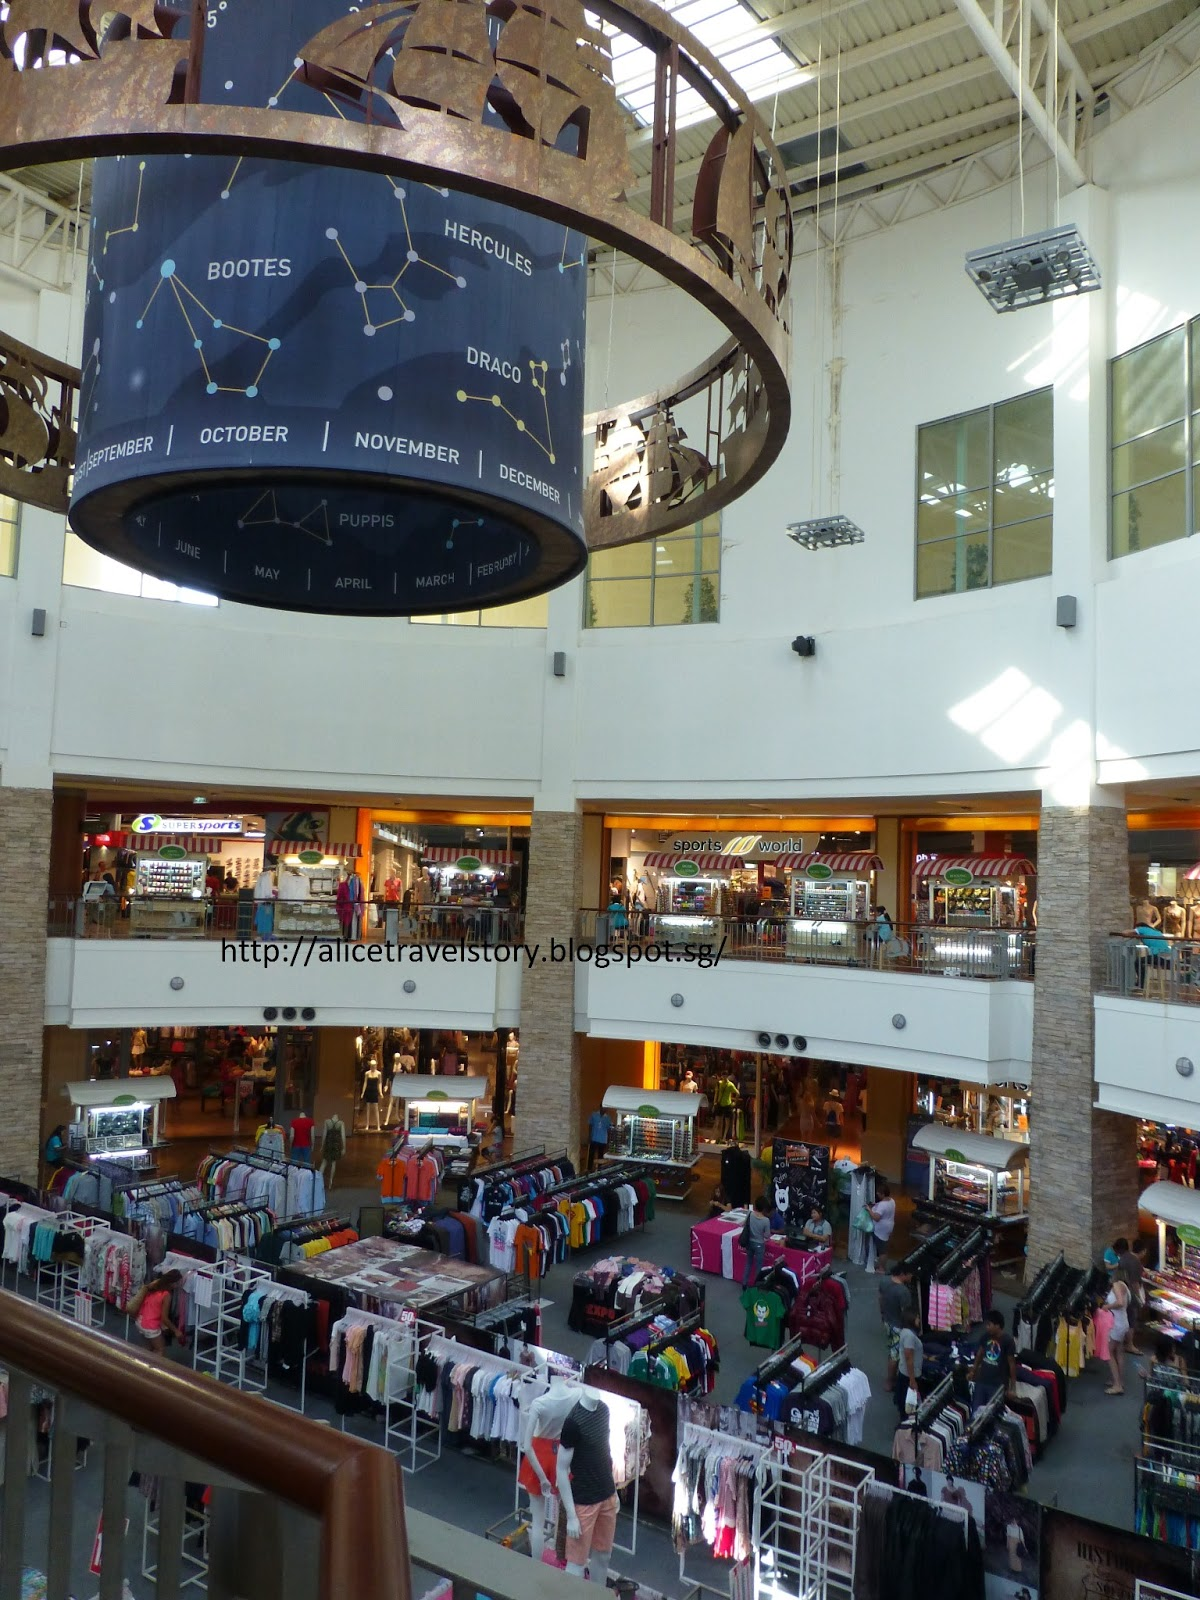 trip to shopping mall Melbourne shopping experiences - public and private melbourne outlet shopping tour info and general melbourne tours and experiences info ph: 03) 8822 4568.